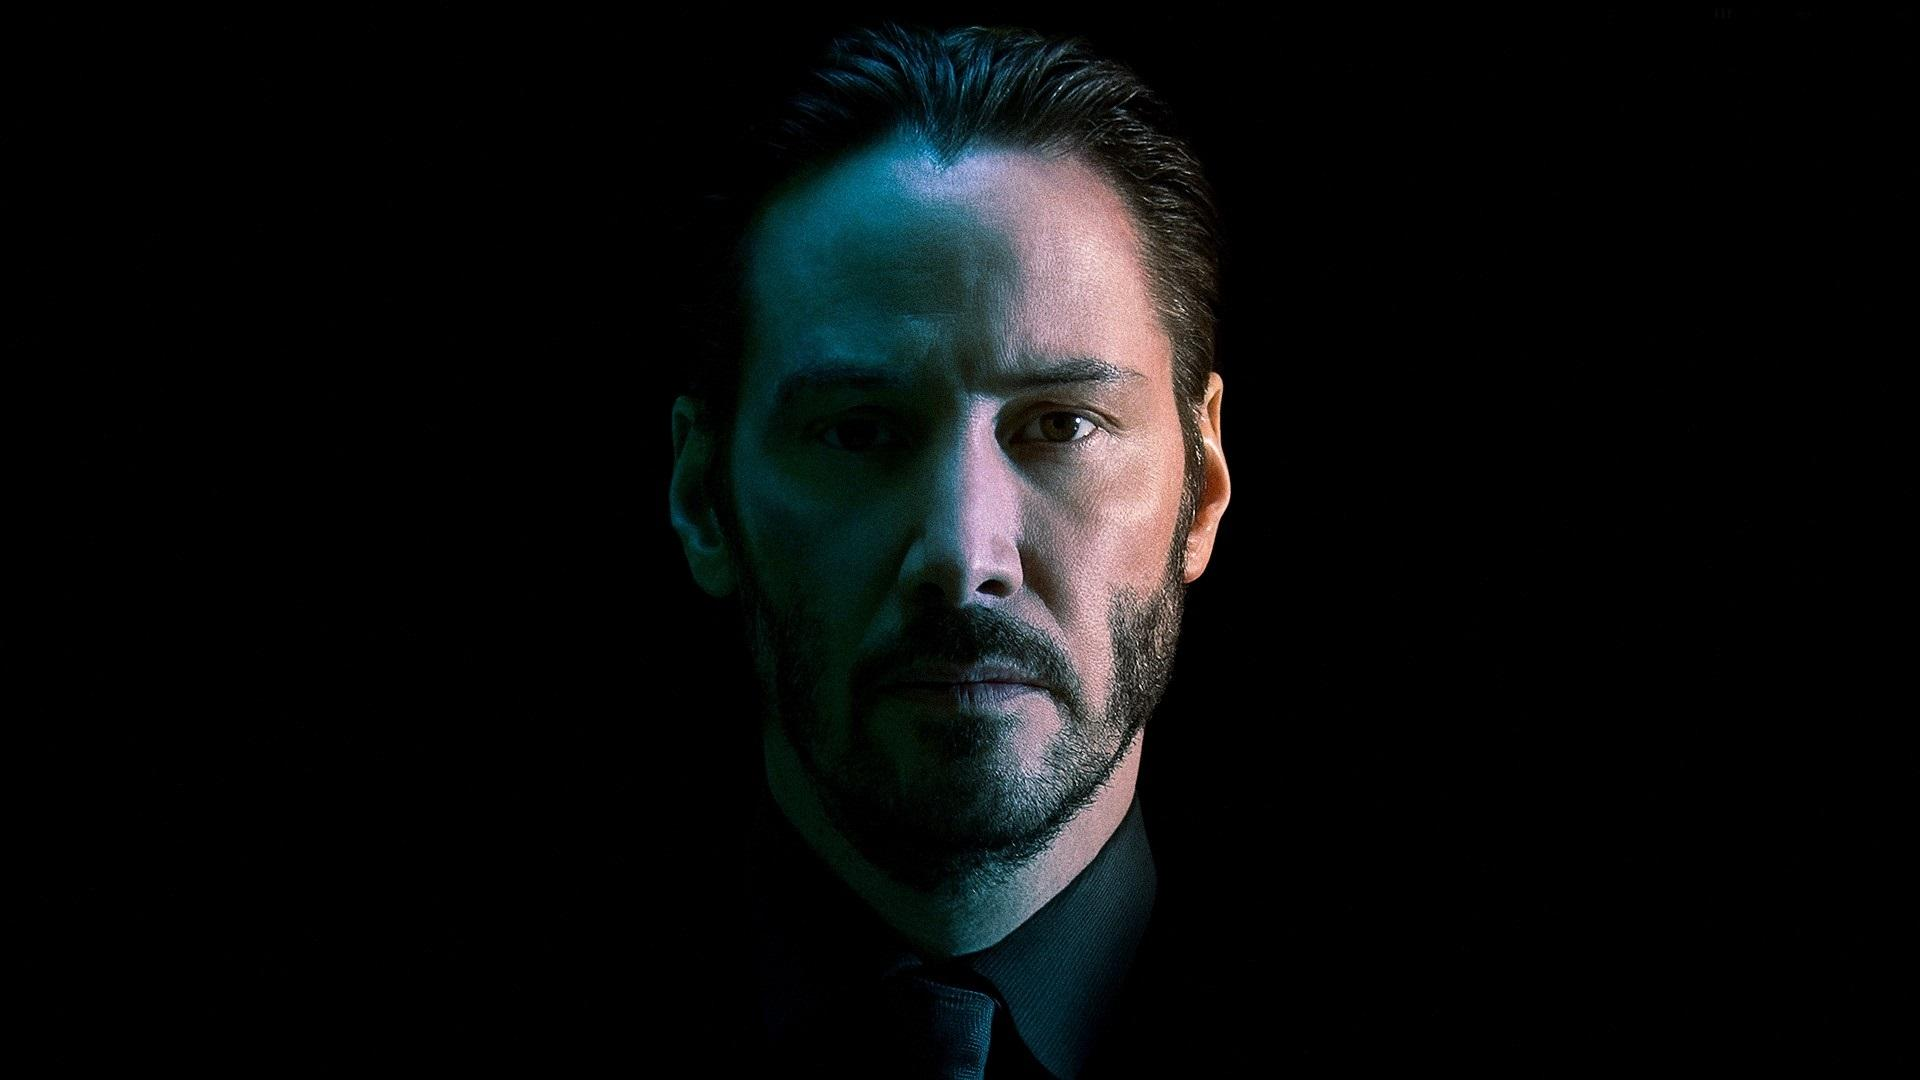 Chuck Iphone Wallpaper John Wick Wallpapers High Quality Download Free